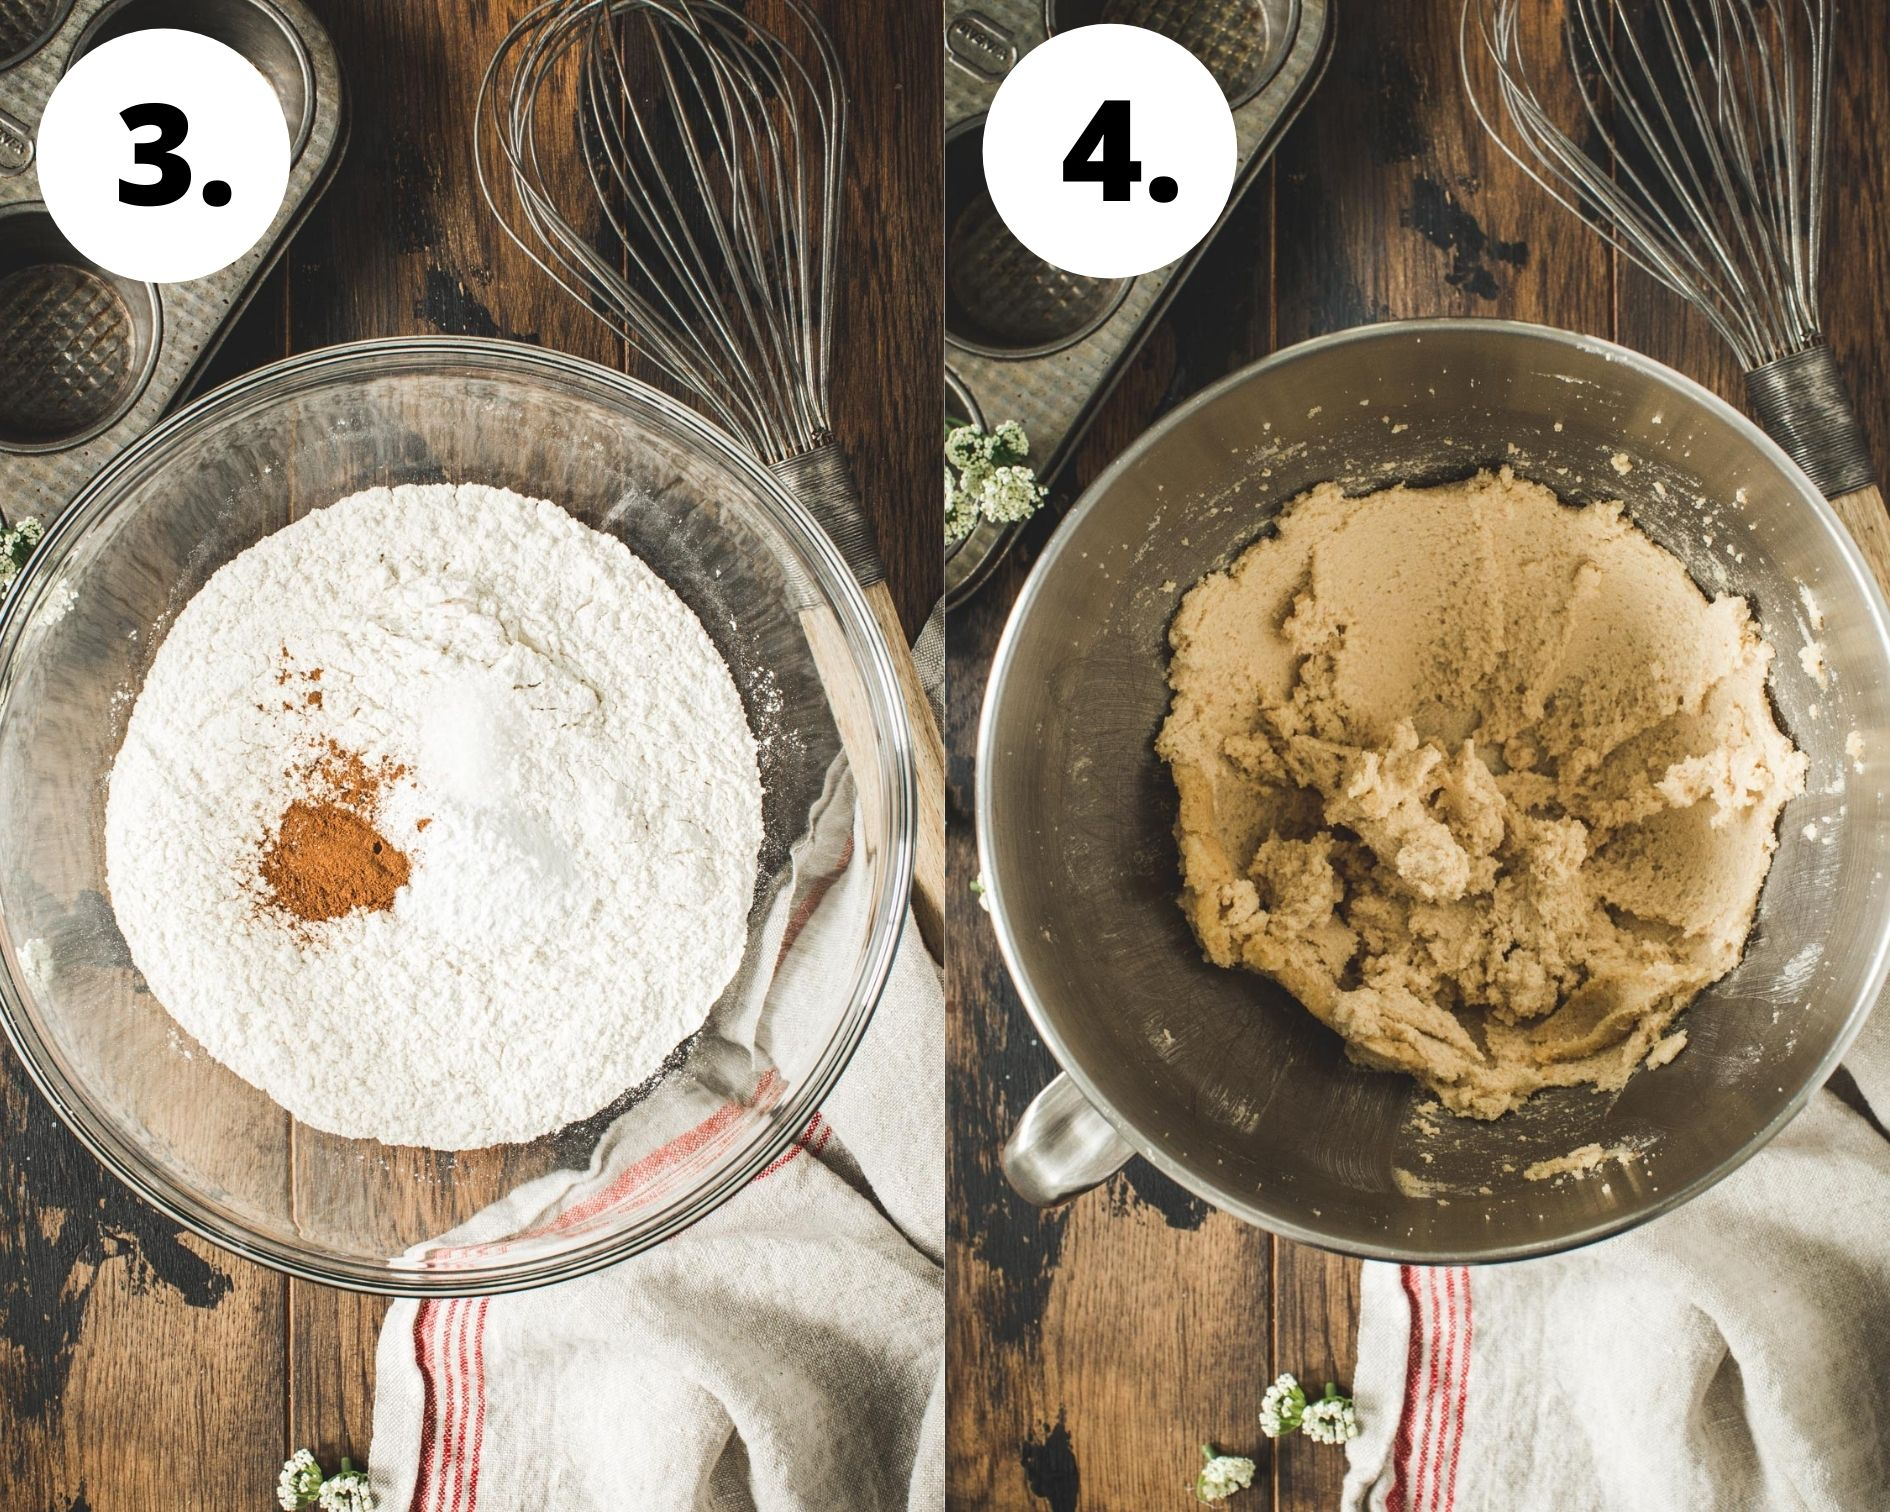 Apple muffins process steps 3 and 4.